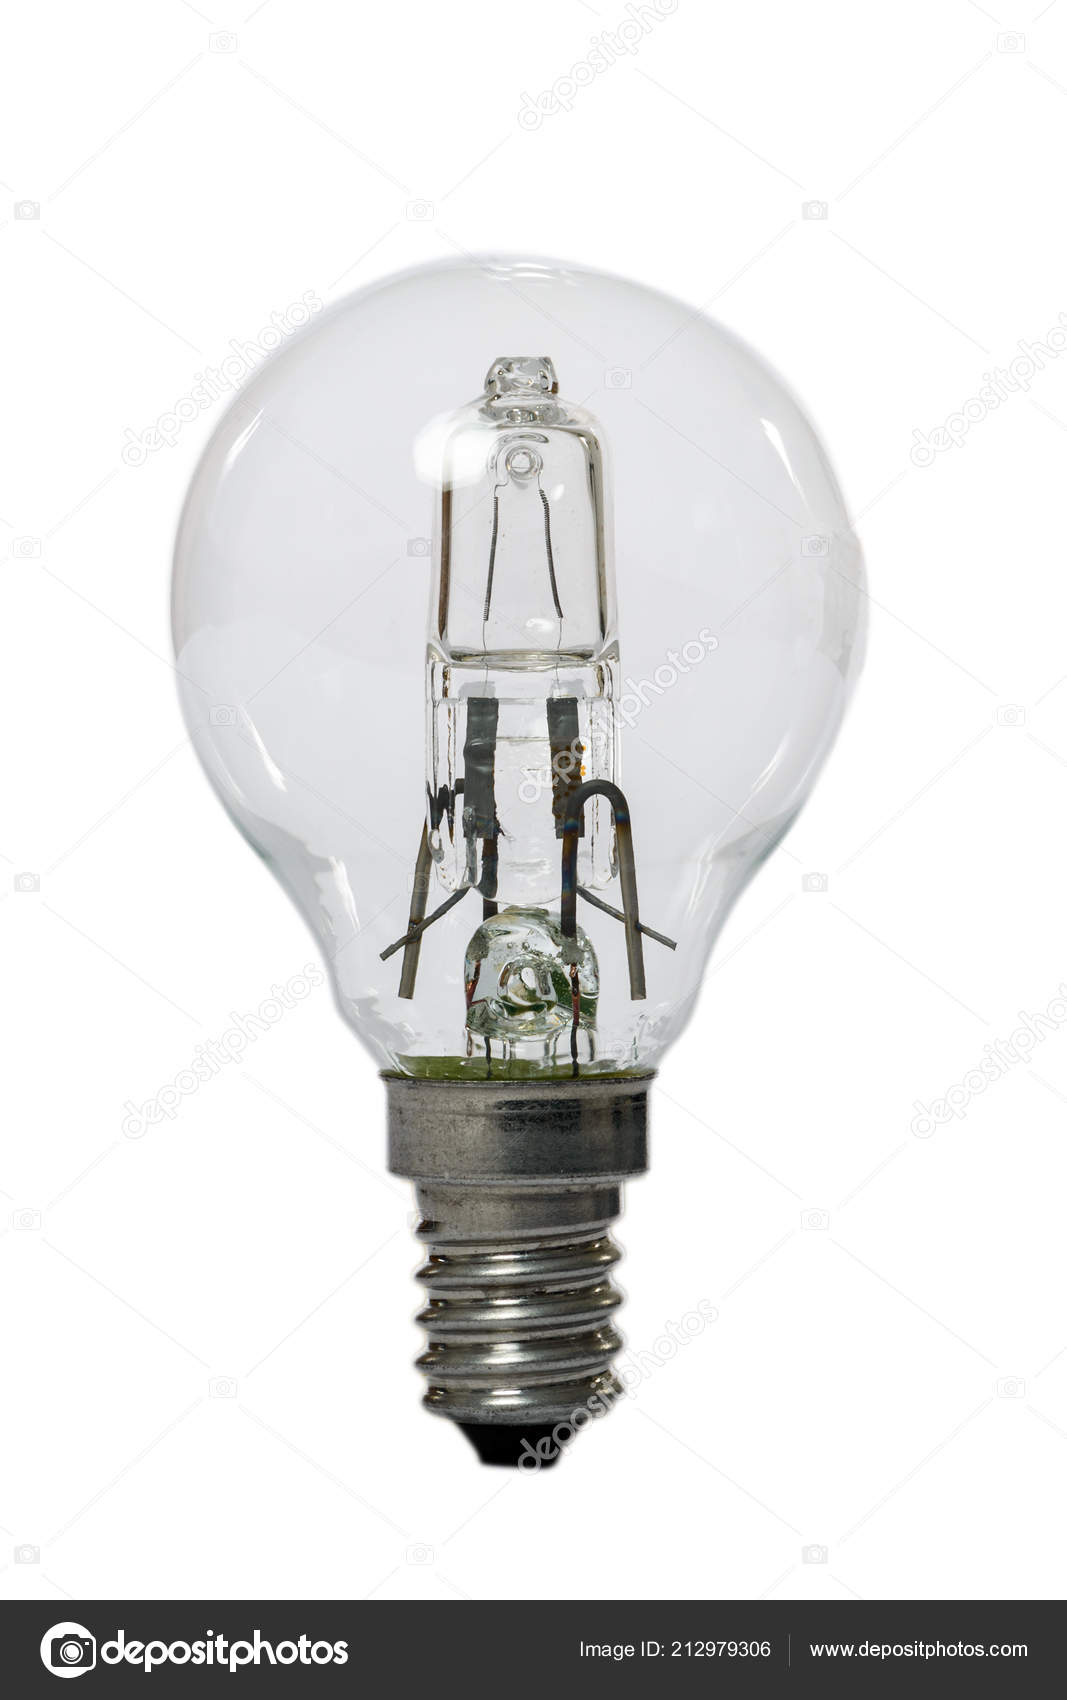 Halogen E27 Halogen Lamp Opaque Glass Bulb E27 Connection Old Standard